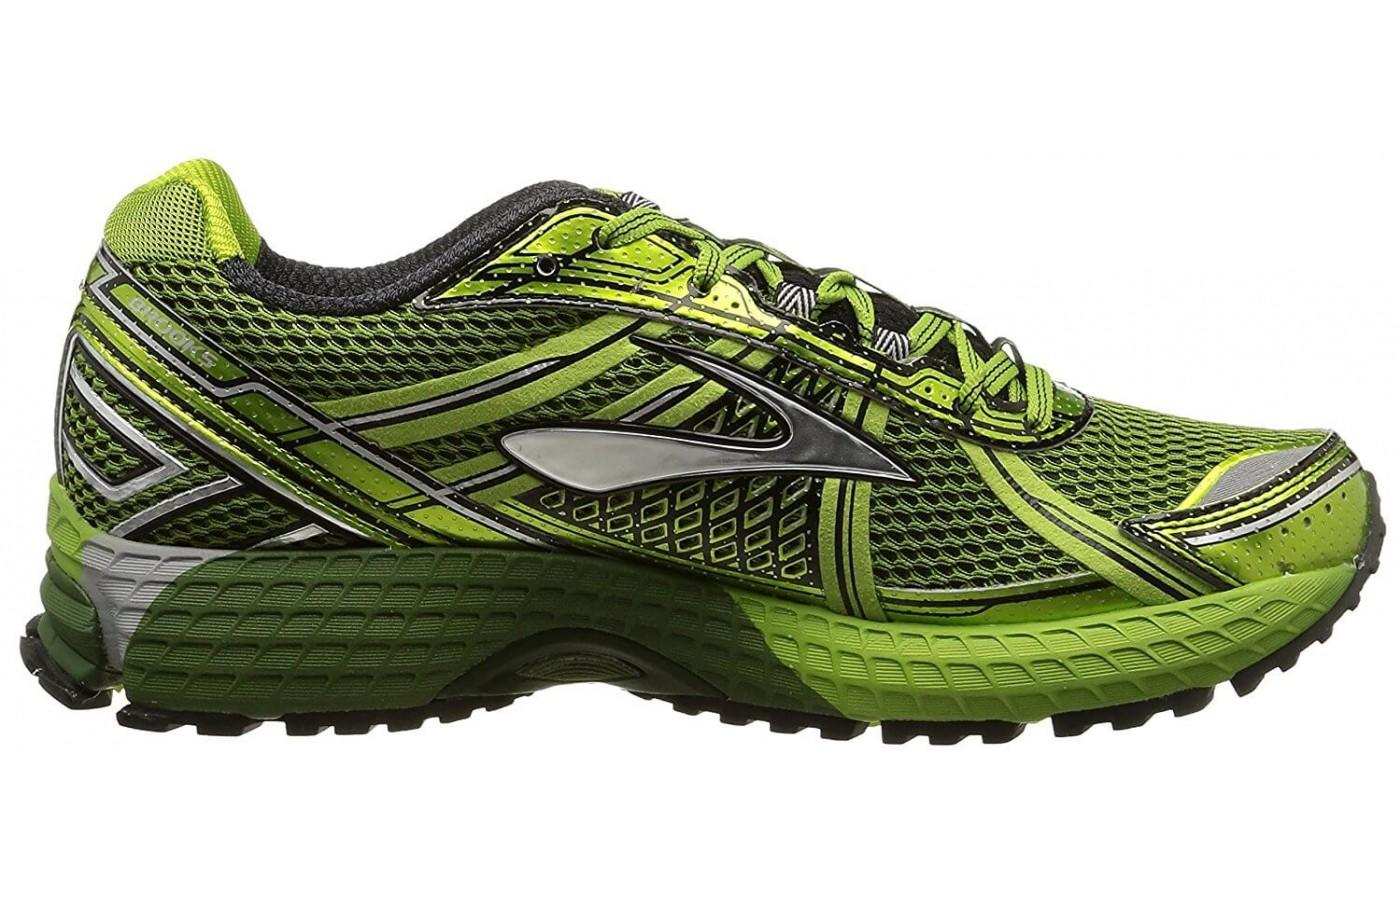 a good look at the side of the Brooks Adrenaline ASR 12